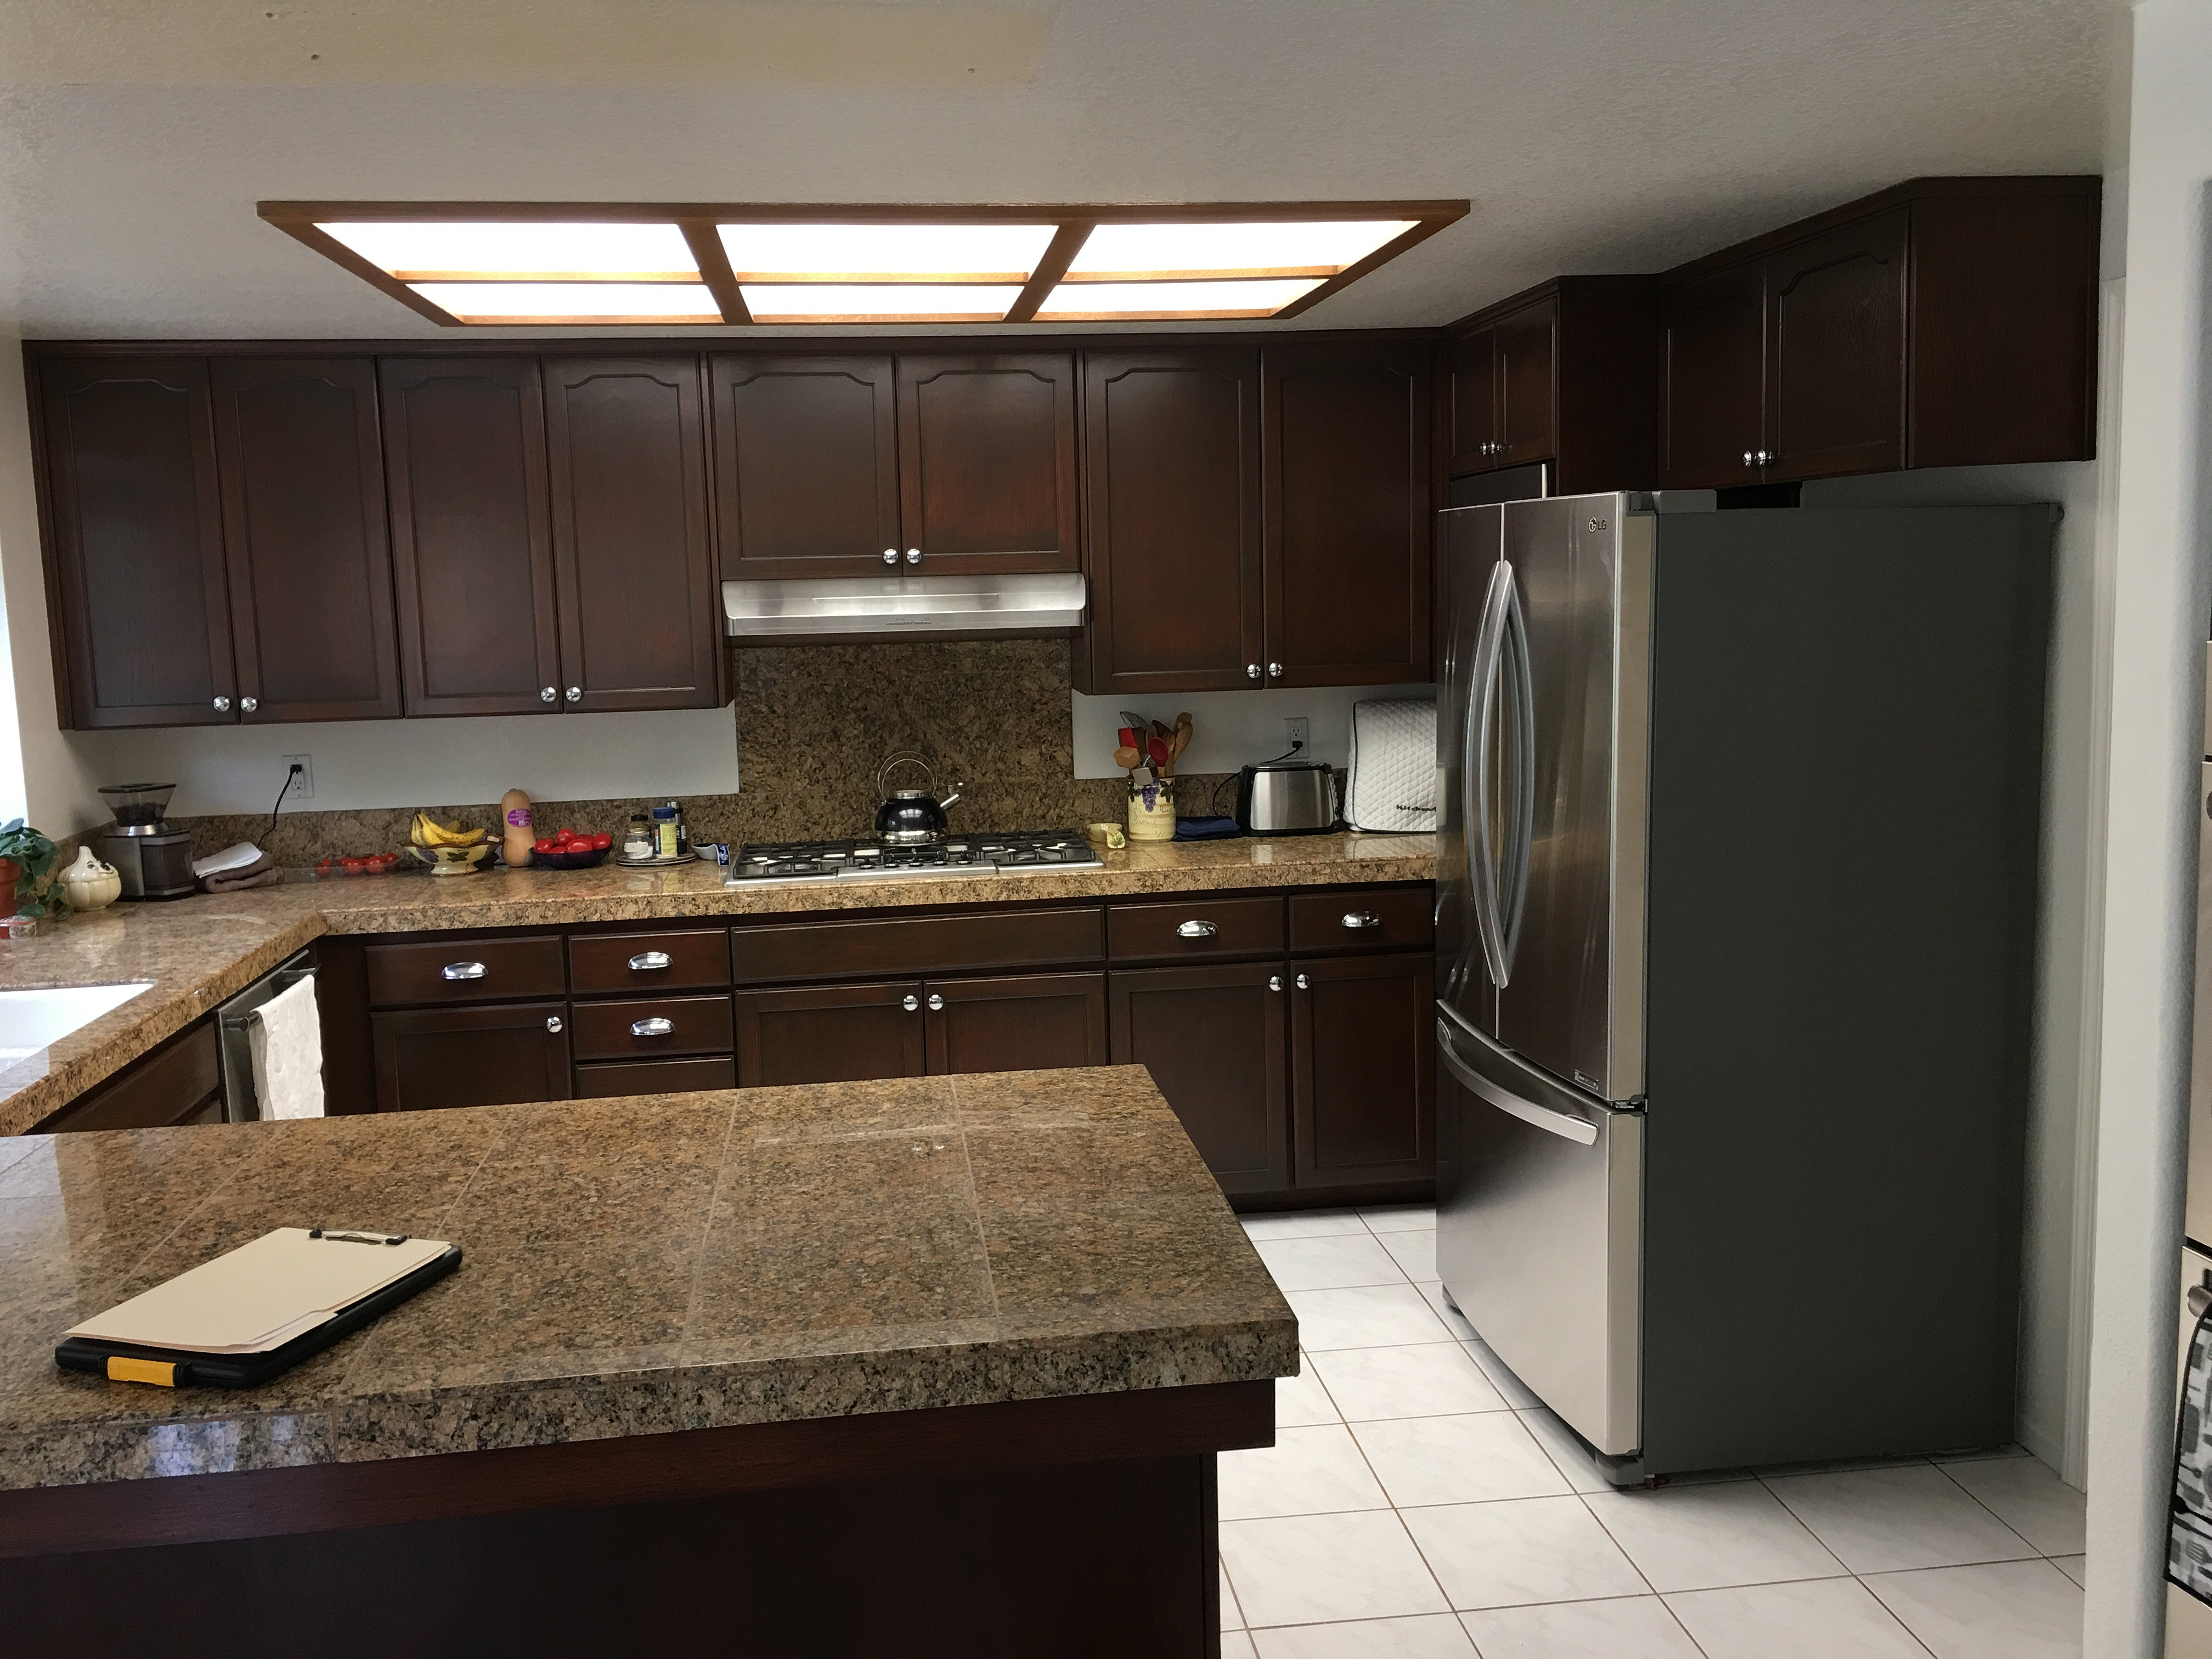 california kitchen remodeling & design | kitchen remodeling masters